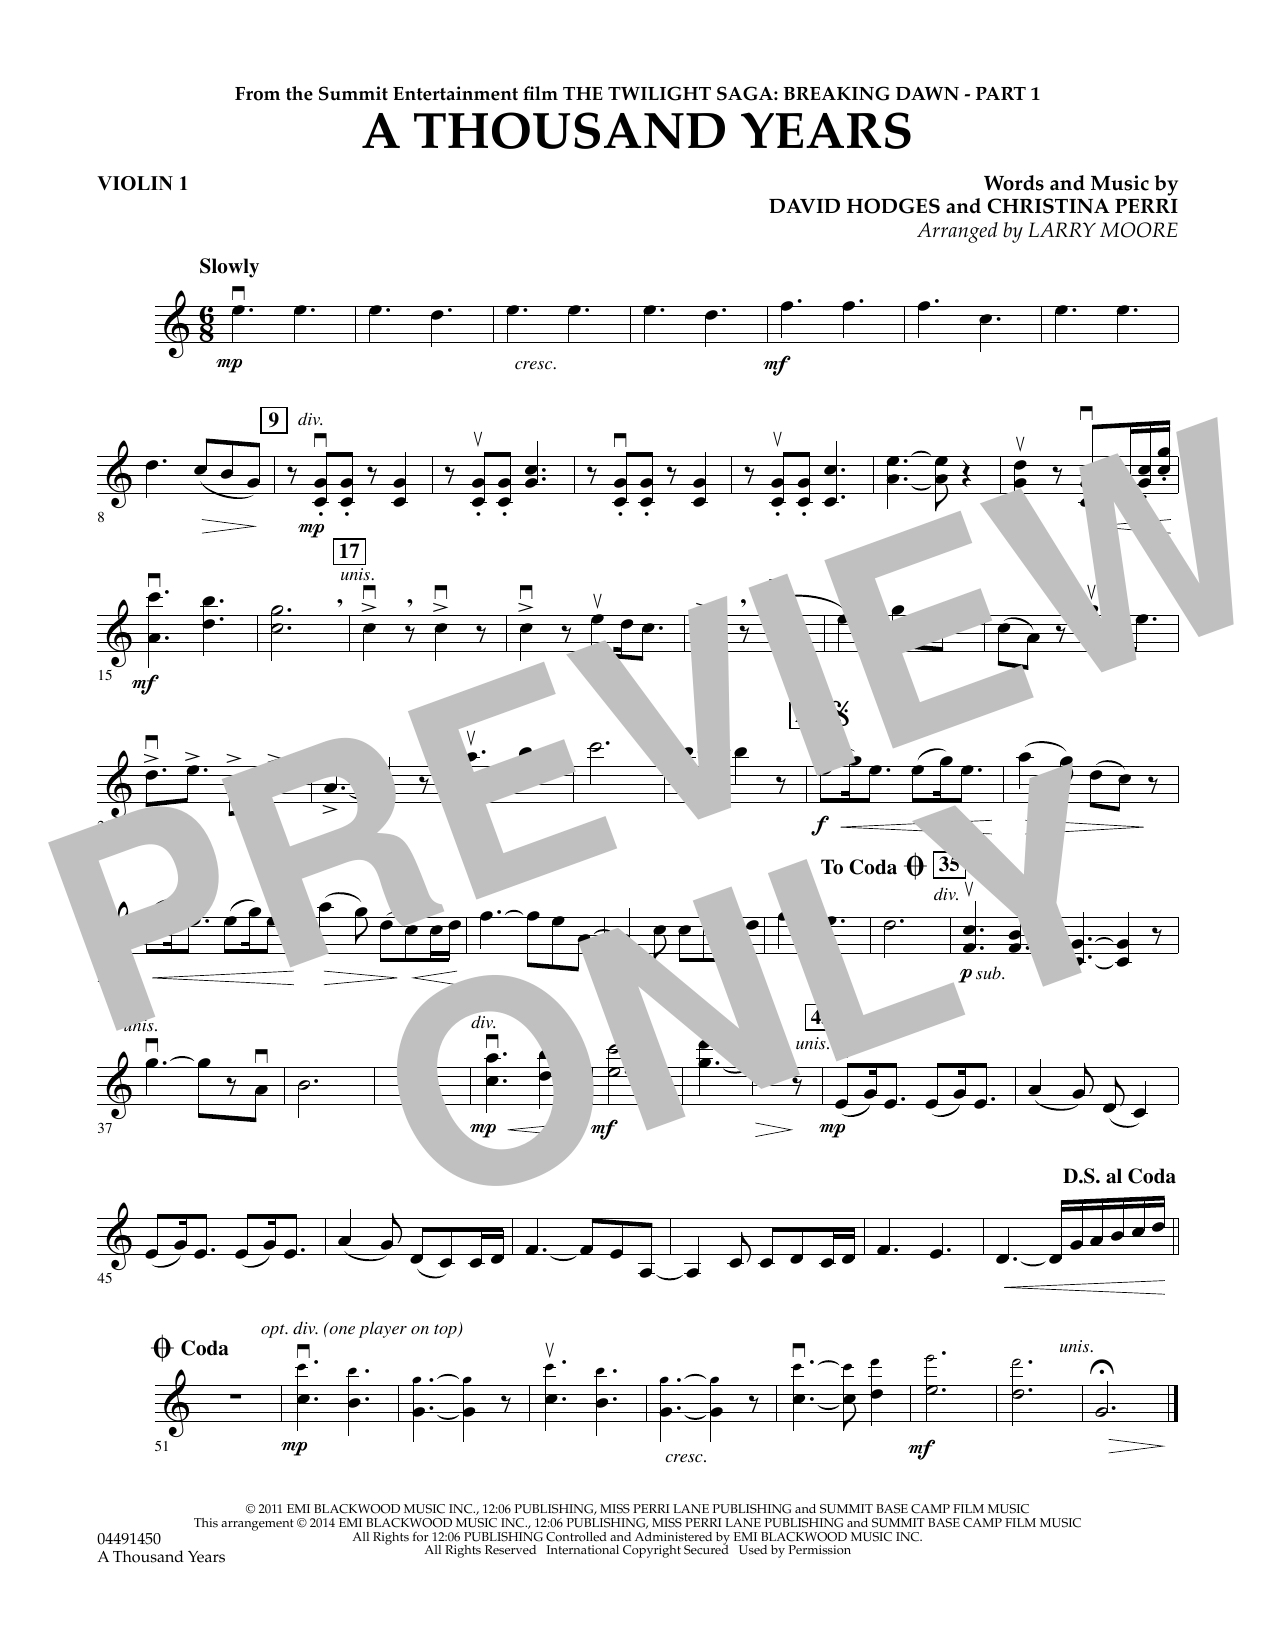 A thousand years violin 1 sheet music at stantons sheet music hexwebz Image collections